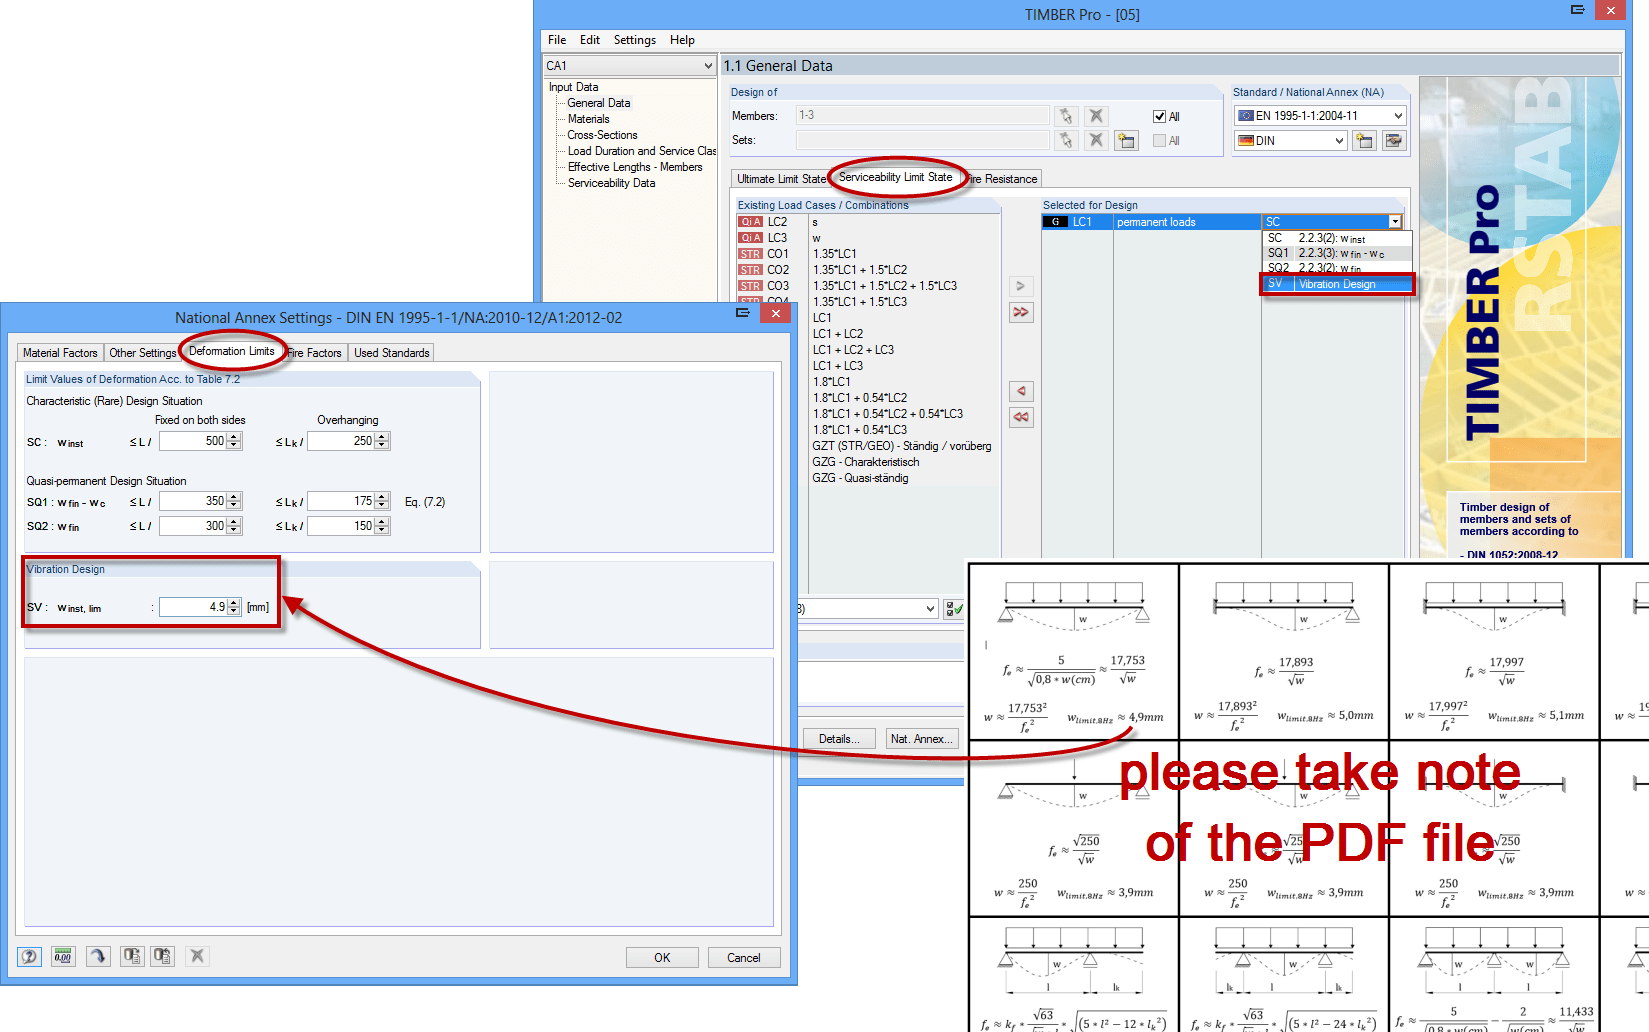 dlubal-rfem-5-rstab-8-simplified-vibration-analysis-for-ec-5-in-rf-timber-pro